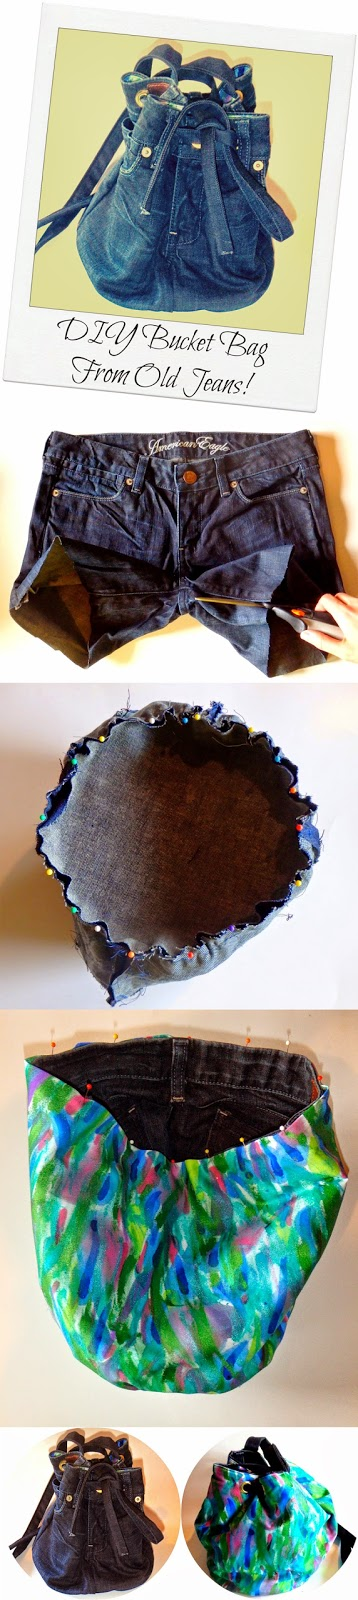 DIY Bucket Bag From Old Jeans.